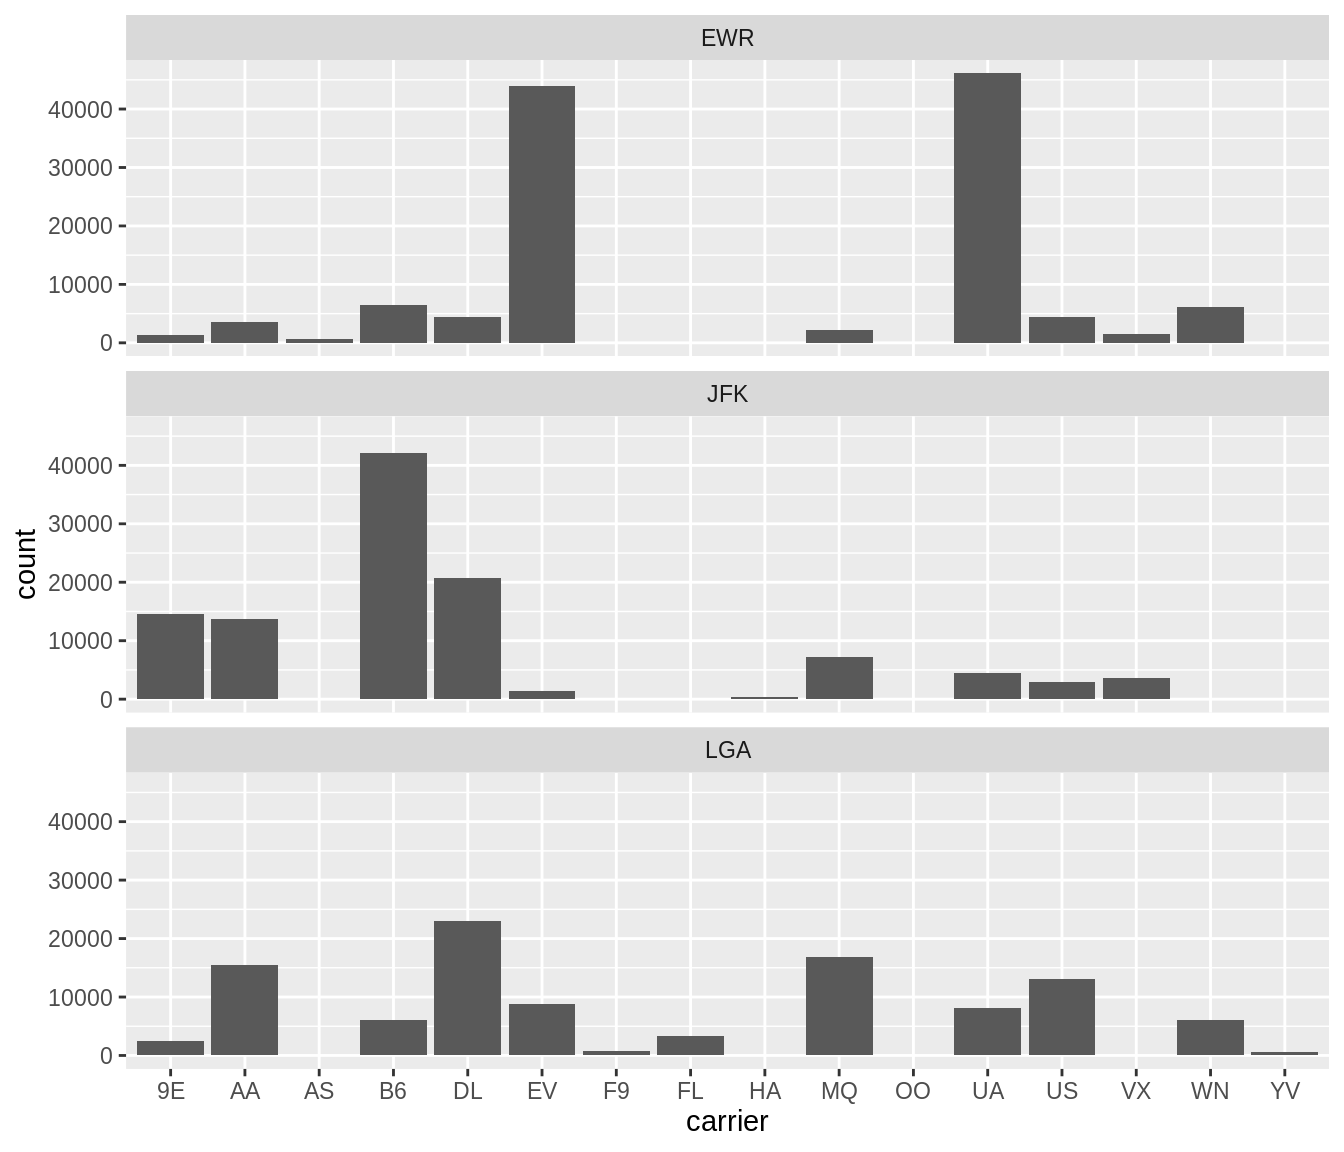 Faceted barplot comparing the number of flights by carrier and origin.